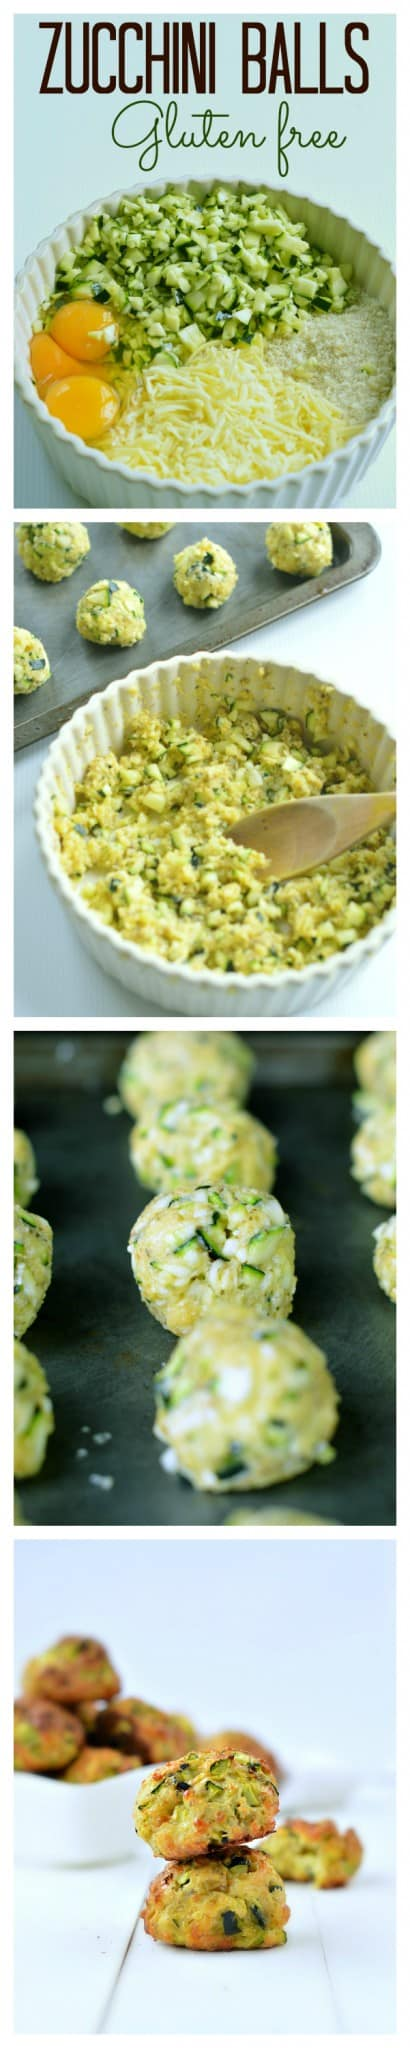 zucchini balls steps by steps